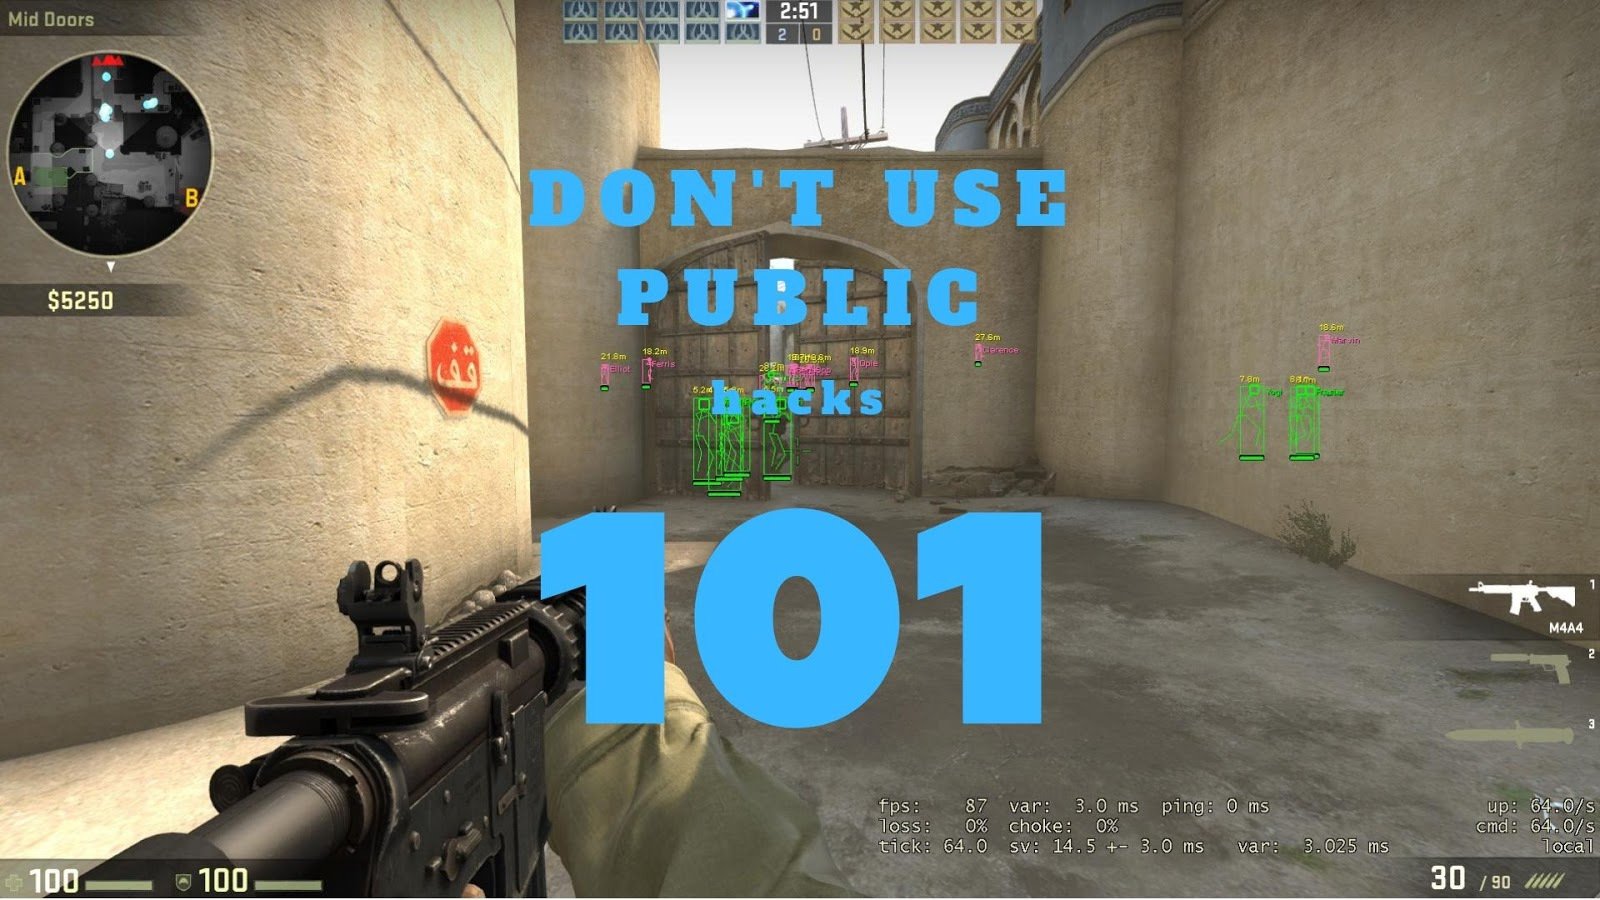 Don't use